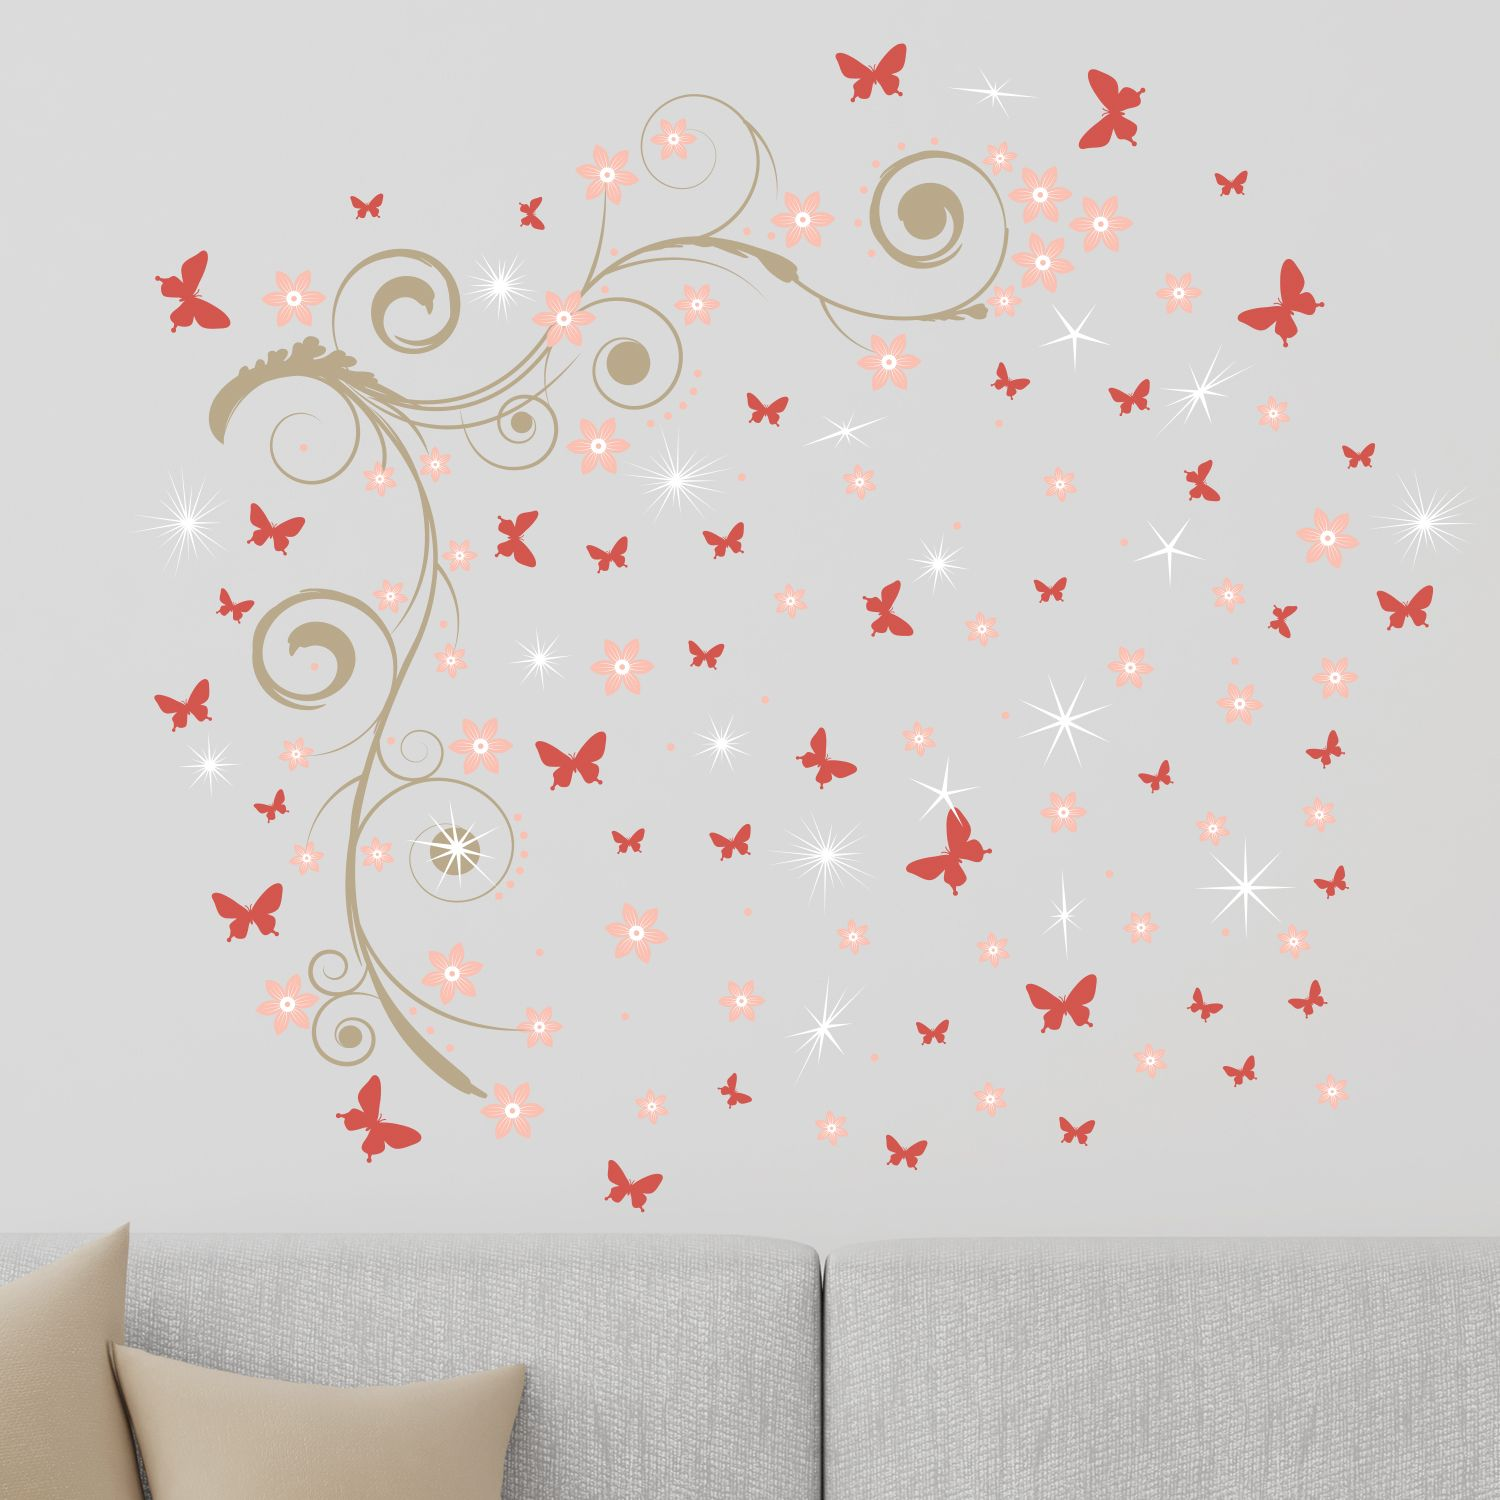 Walplus Pink Butterfly Vine Wall Sticker Art with Swarovski Crystals